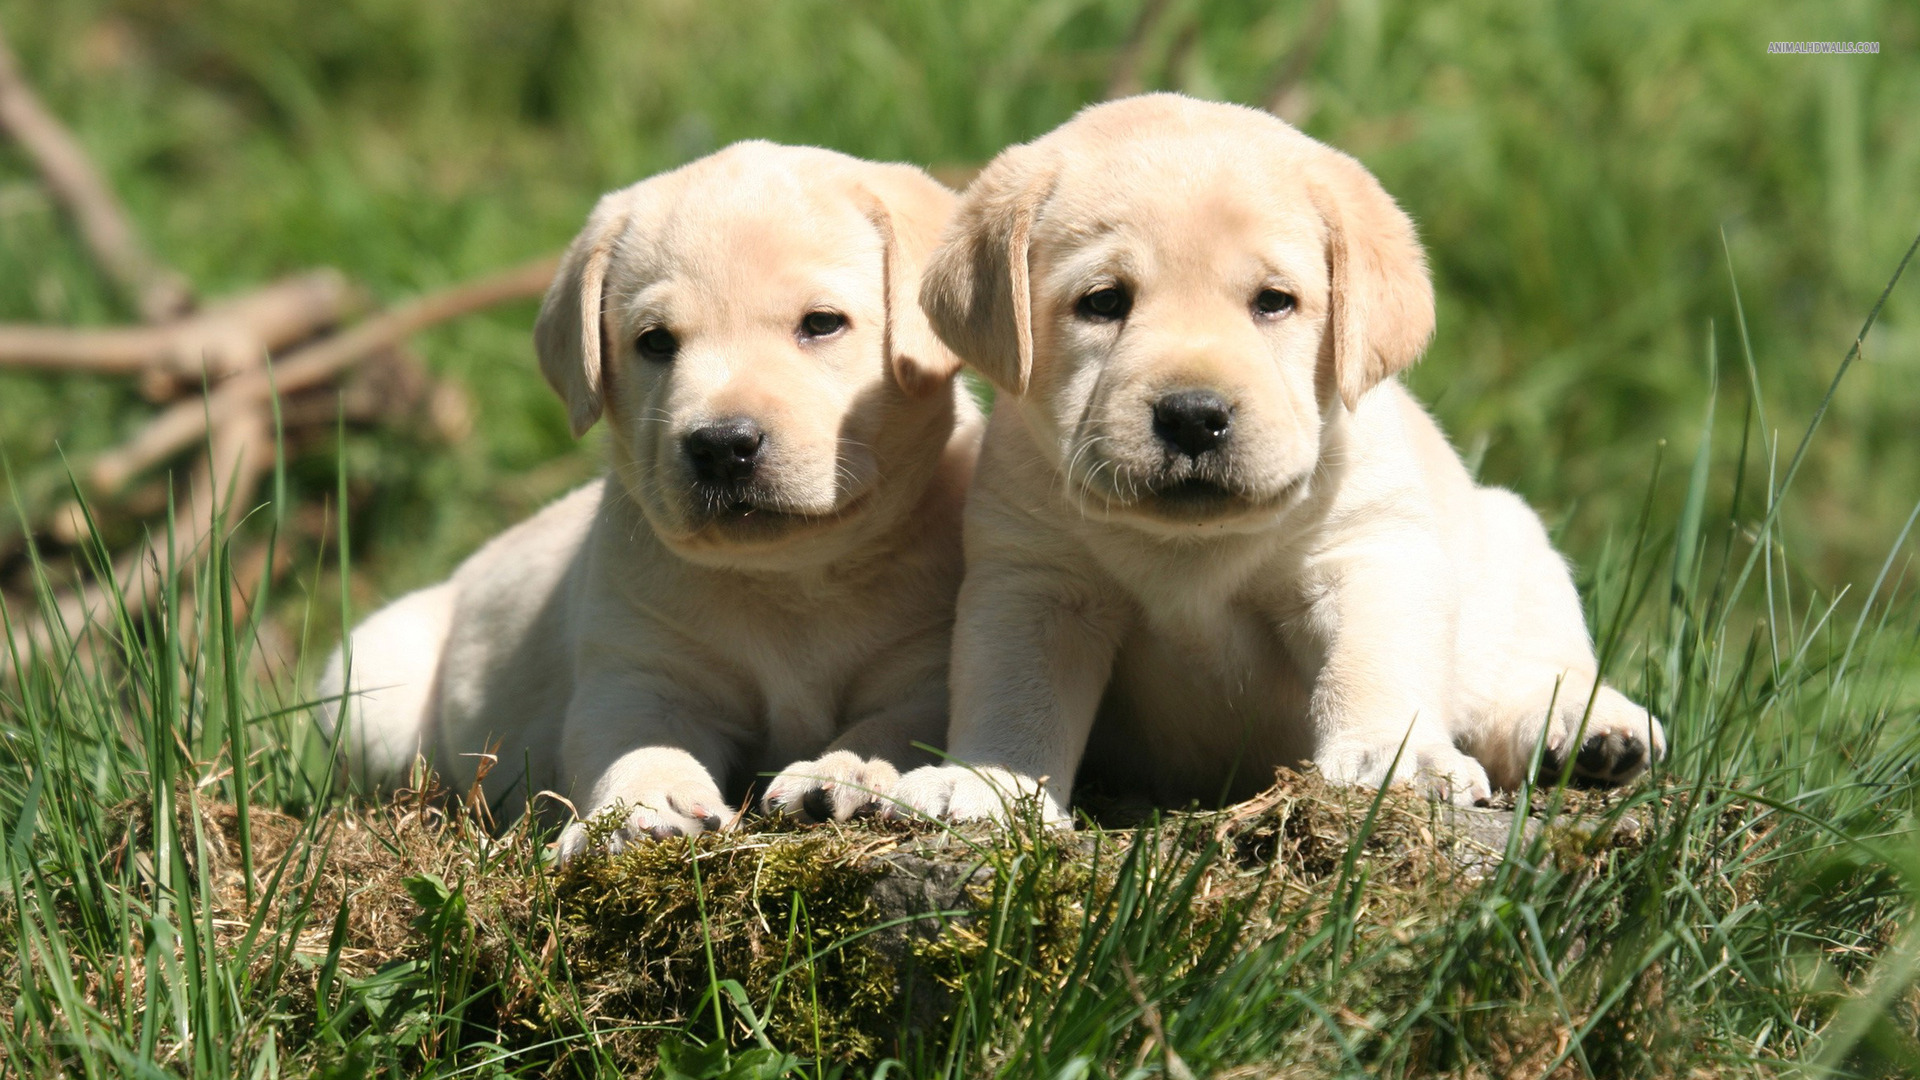 Free Download Hd Labrador Retriever Puppies Wallpapers 1080p Dogs Hd 1920x1080 For Your Desktop Mobile Tablet Explore 96 Labrador Dog Wallpapers Labrador Dog Wallpapers Labrador Wallpaper Wallpaper Labrador Retriever